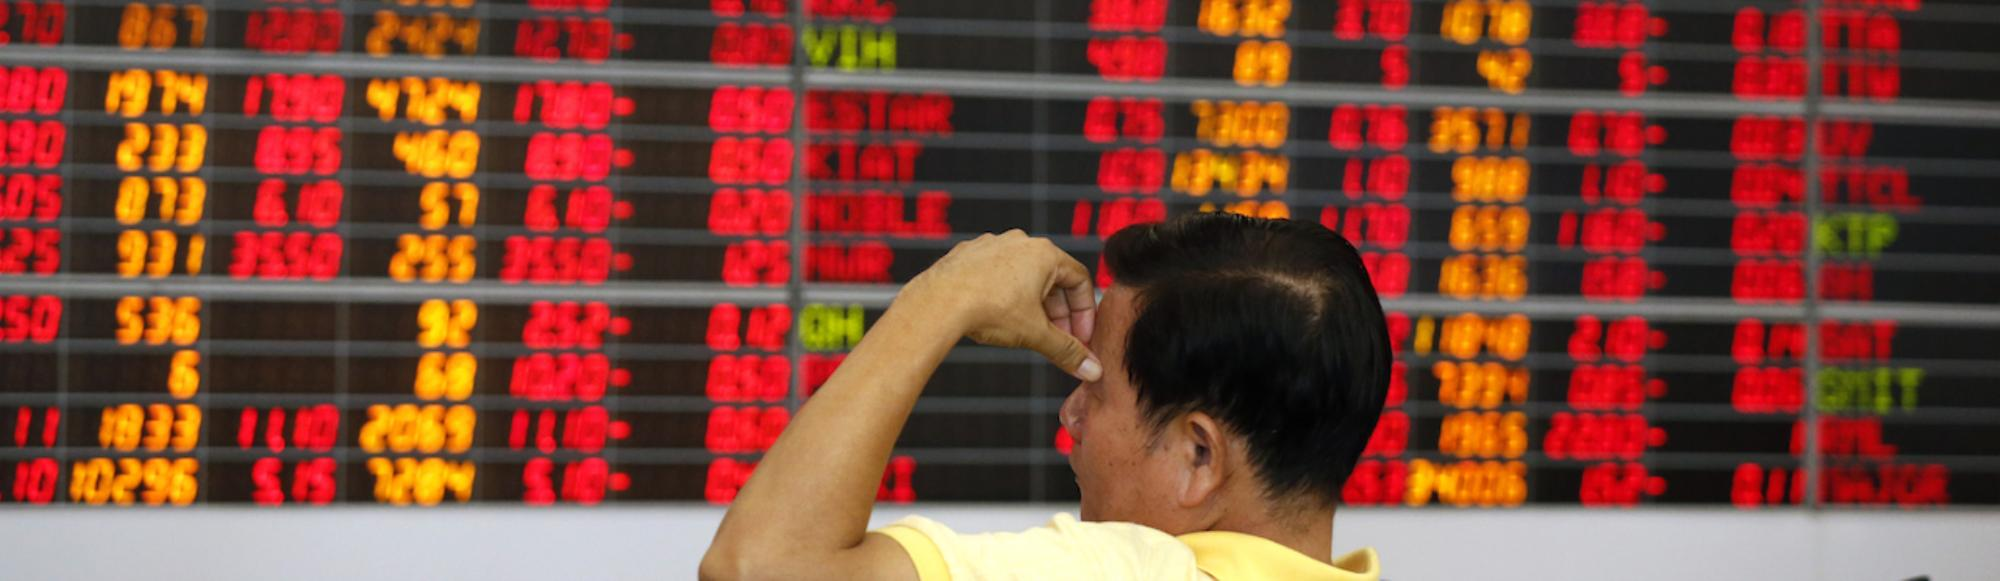 chinas-shortest-ever-trading-day-rocked-the-global-markets-1452193416